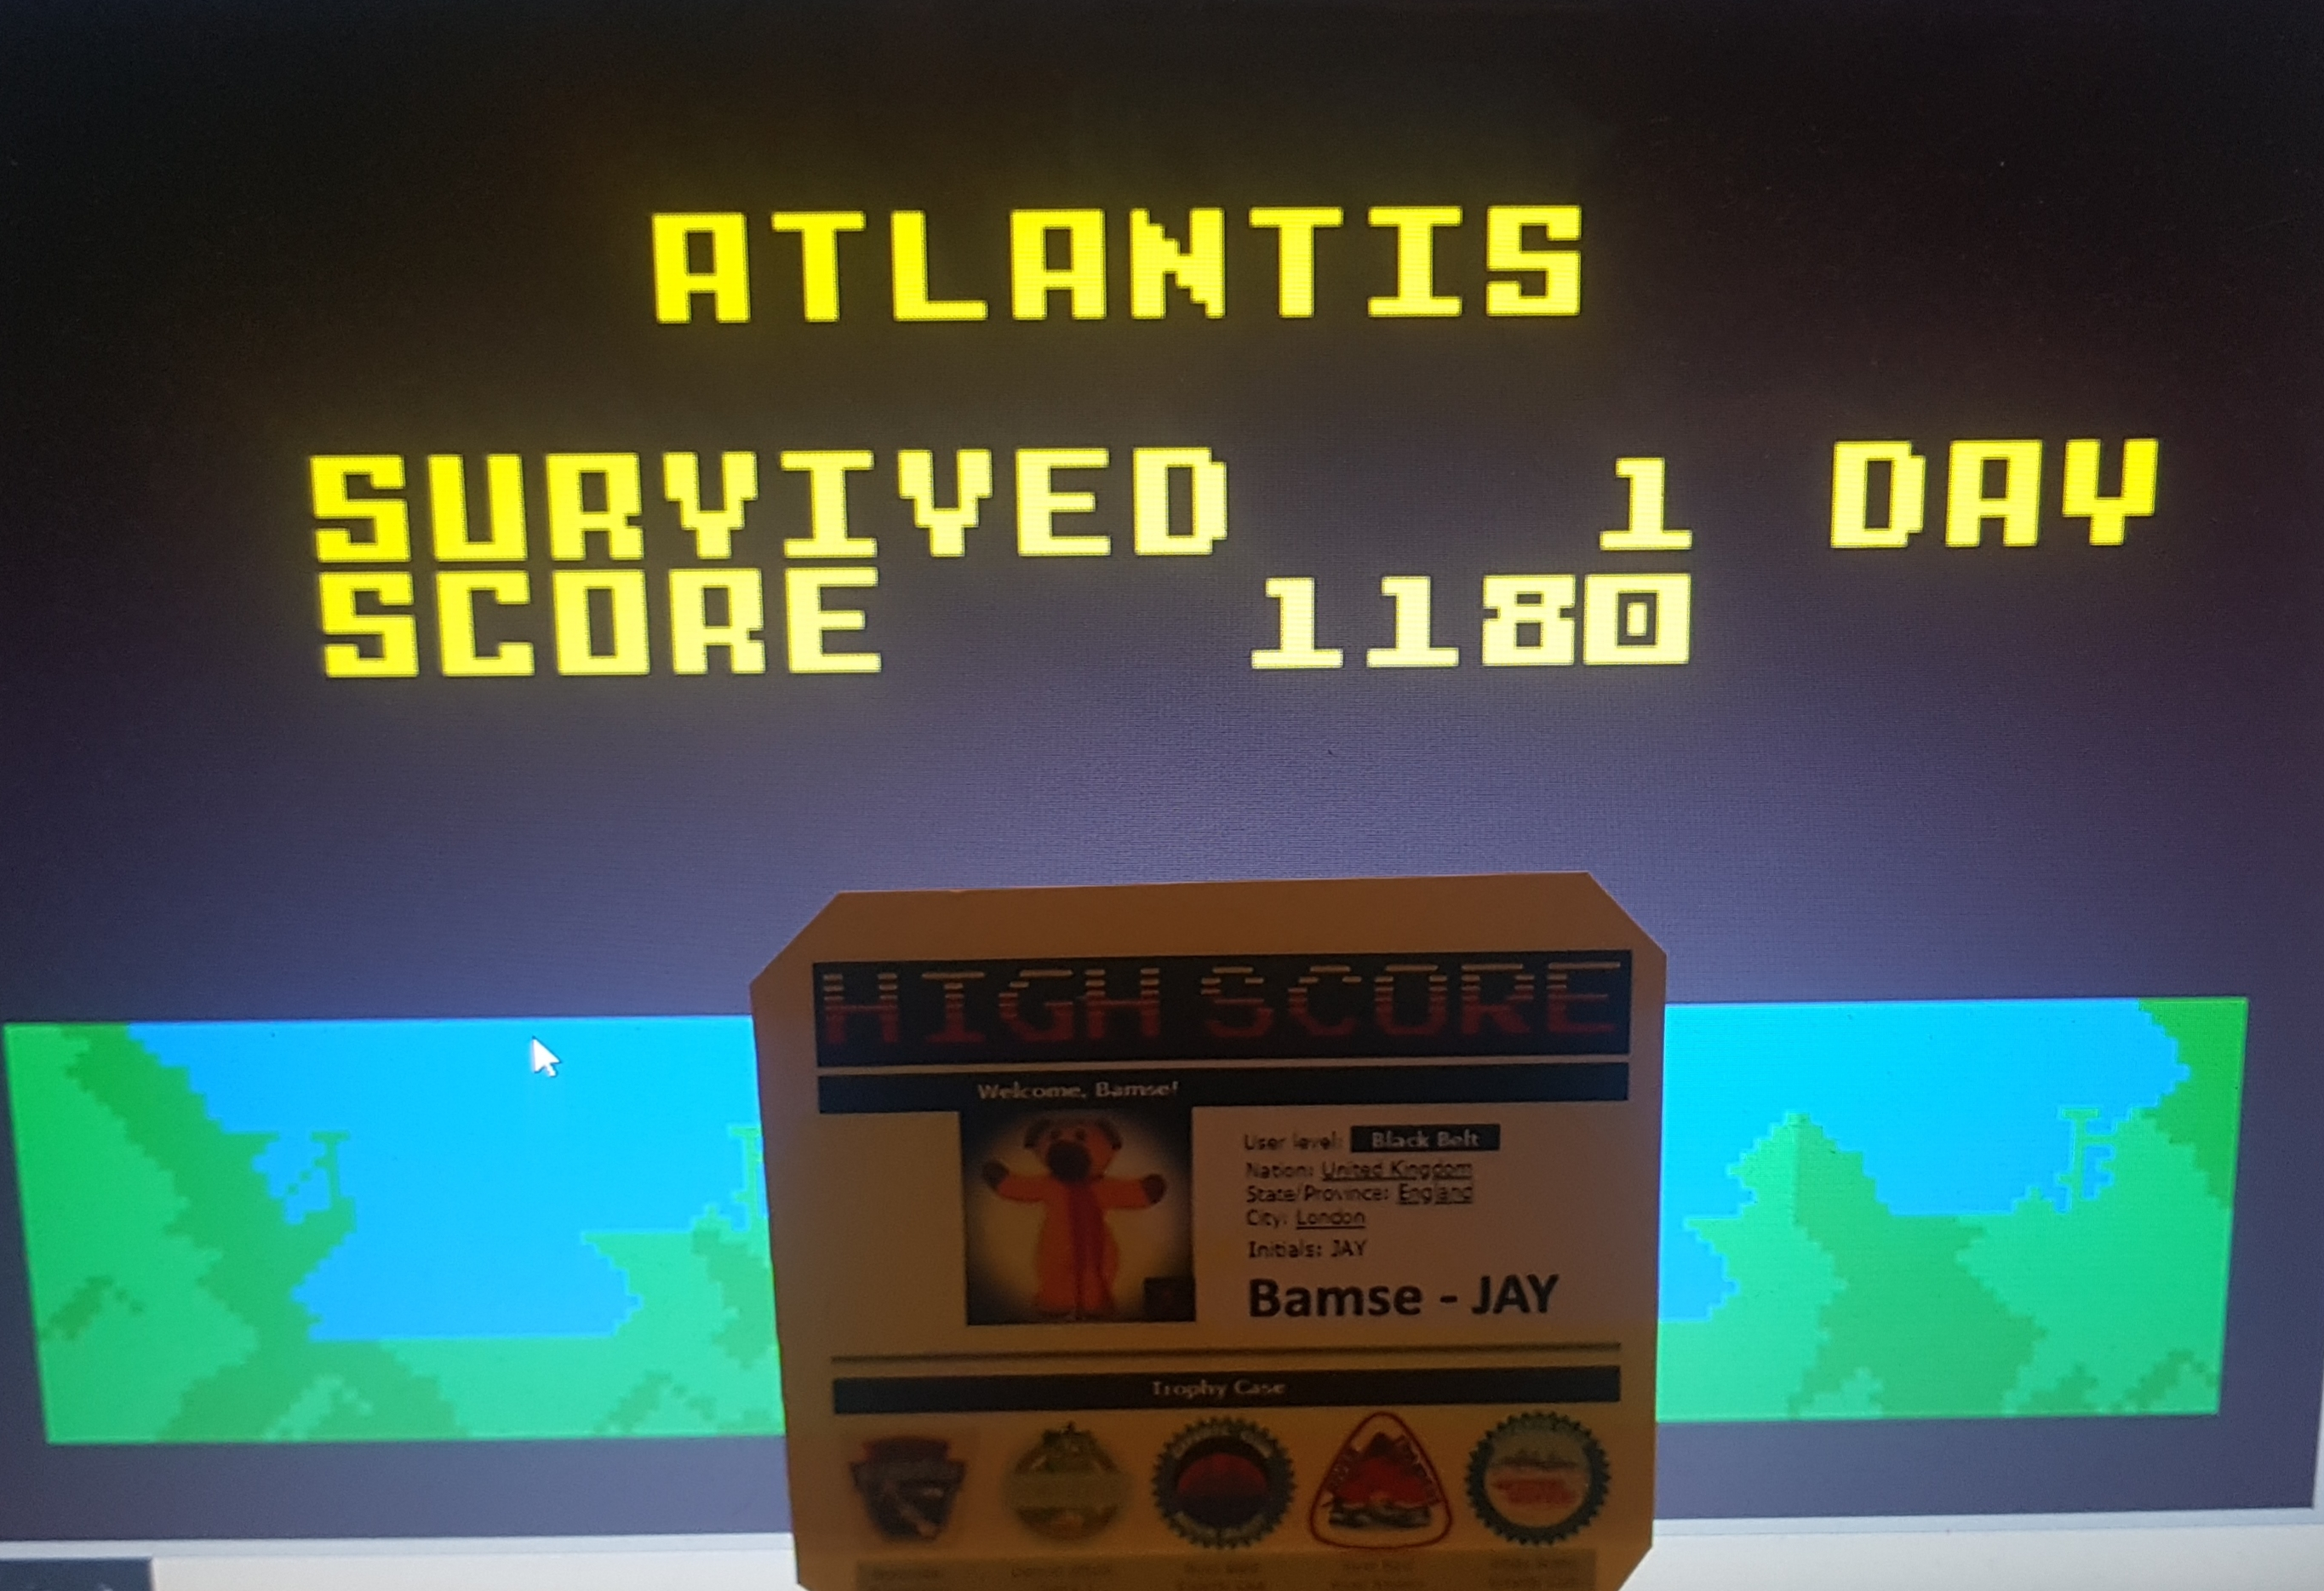 Bamse: Atlantis: Hard (Intellivision Emulated) 1,180 points on 2019-08-14 17:12:13